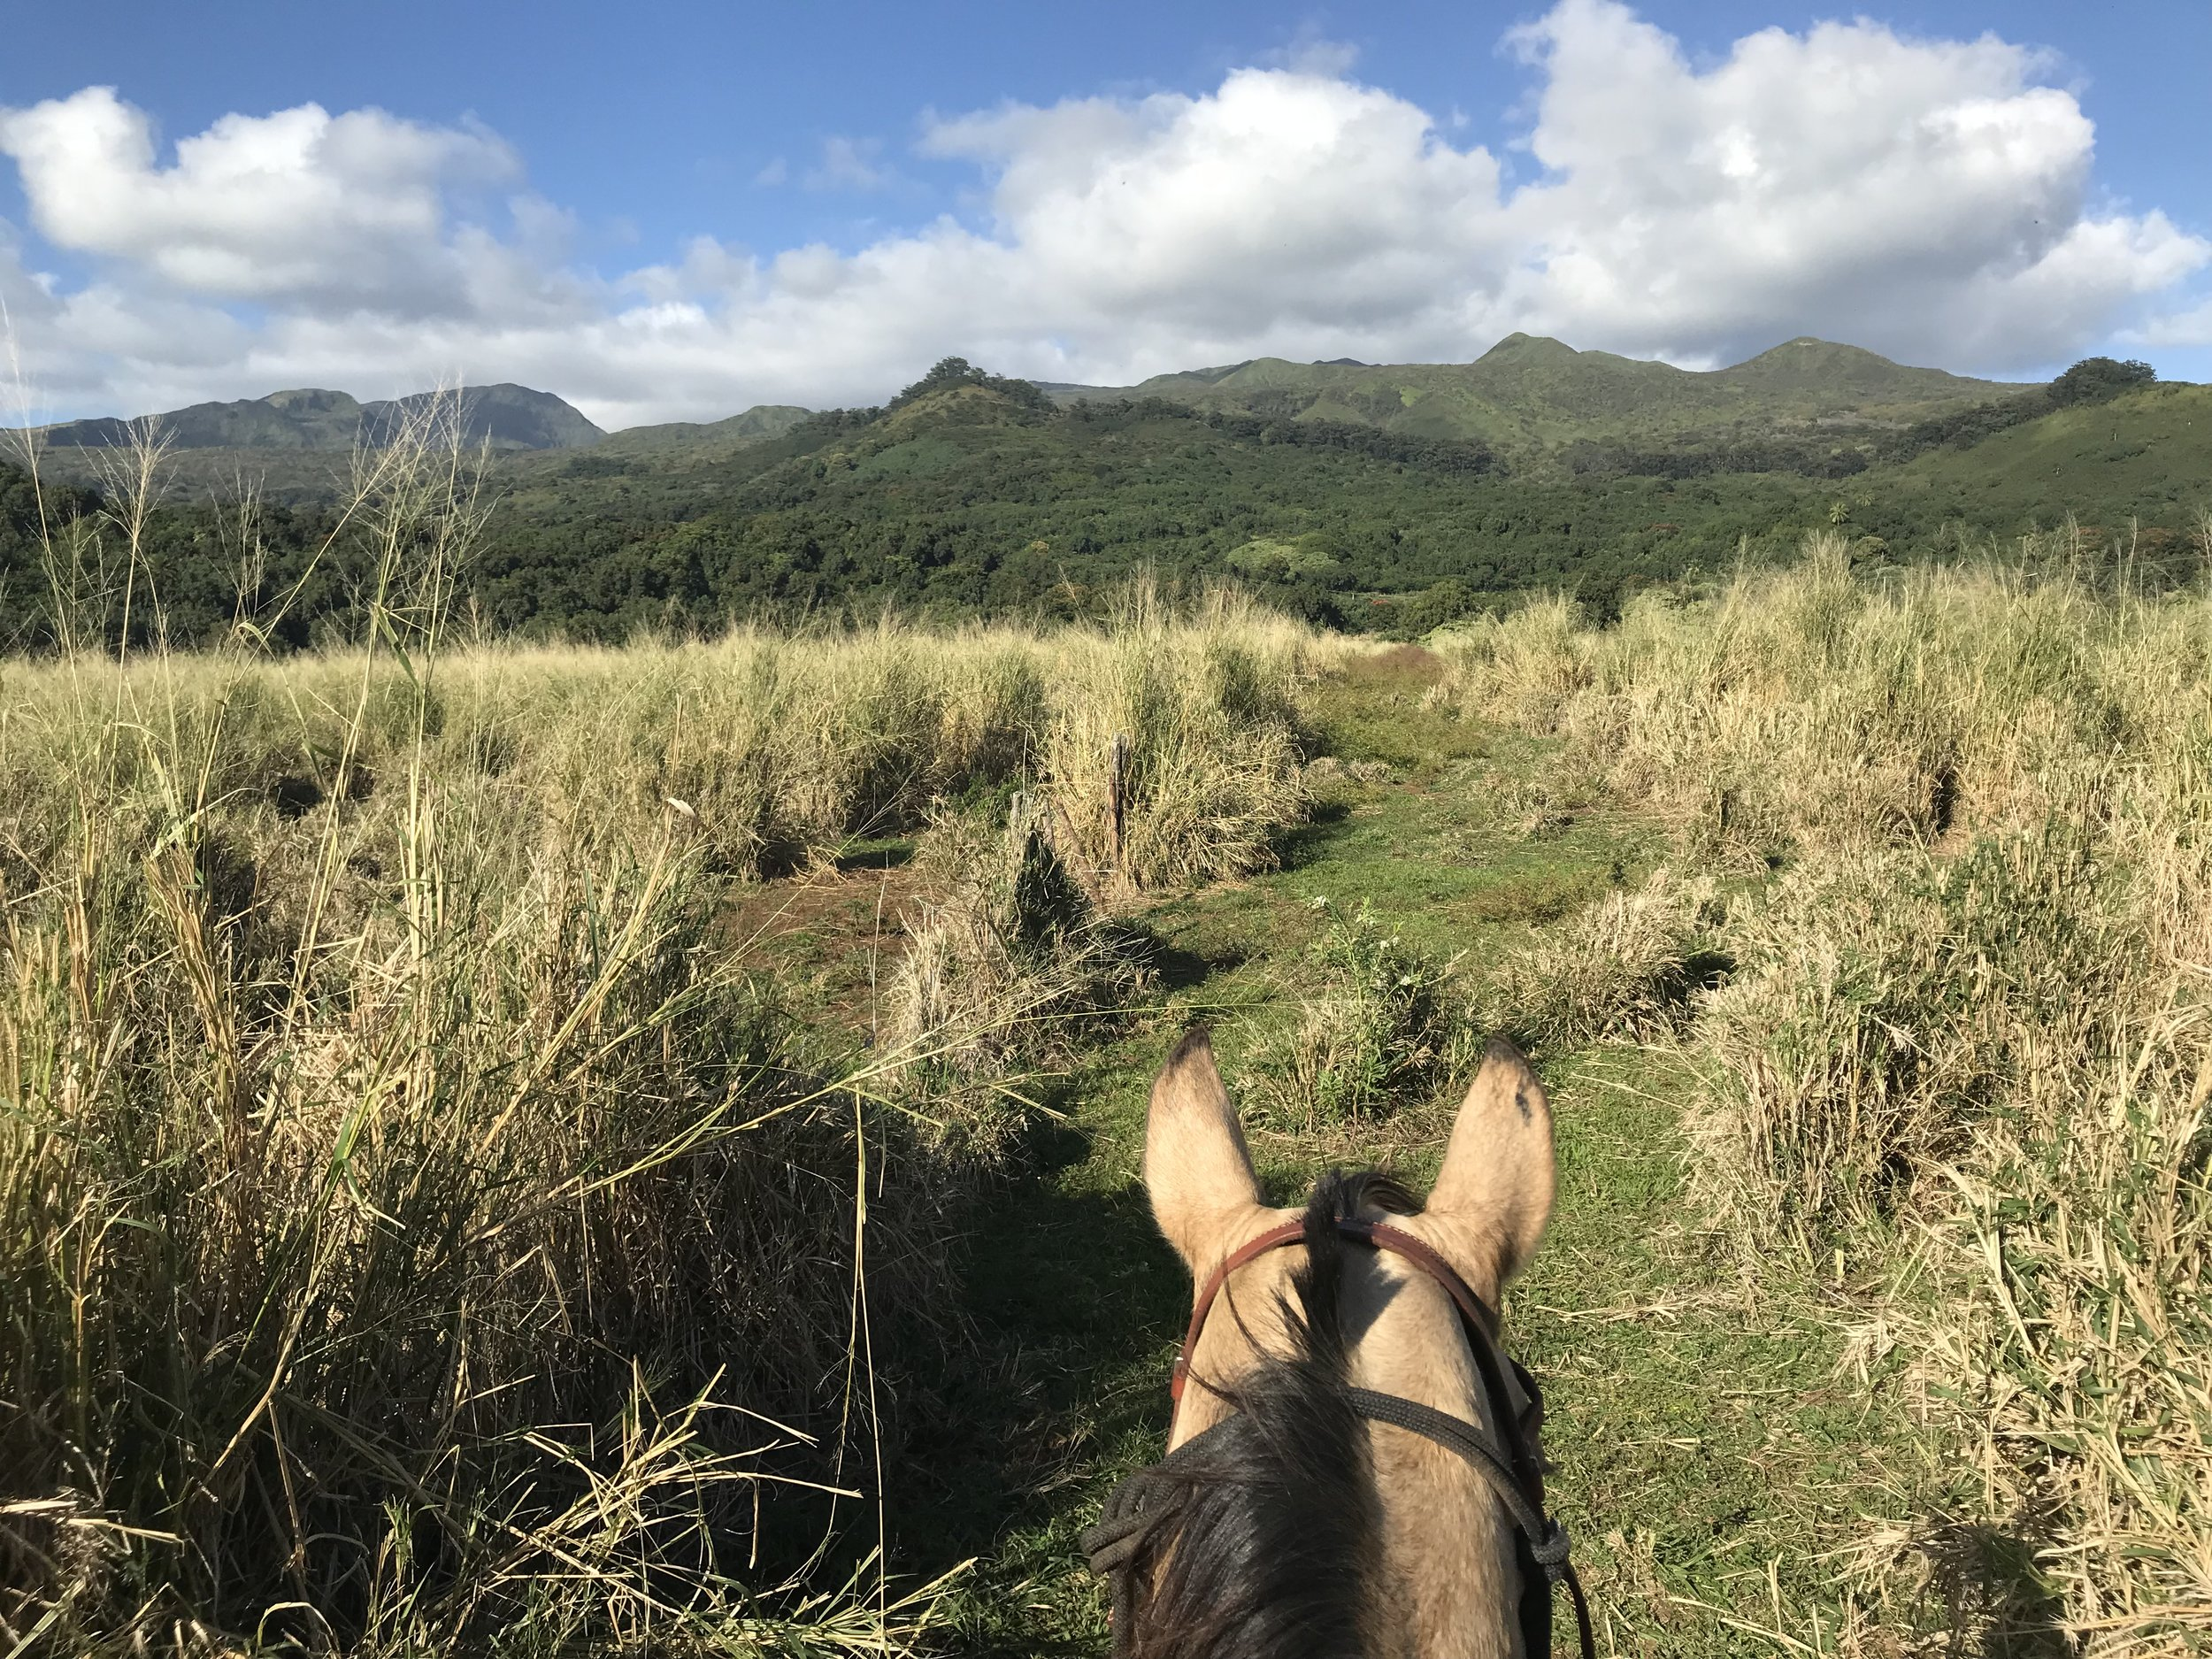 View from horseback at Hana Ranch.